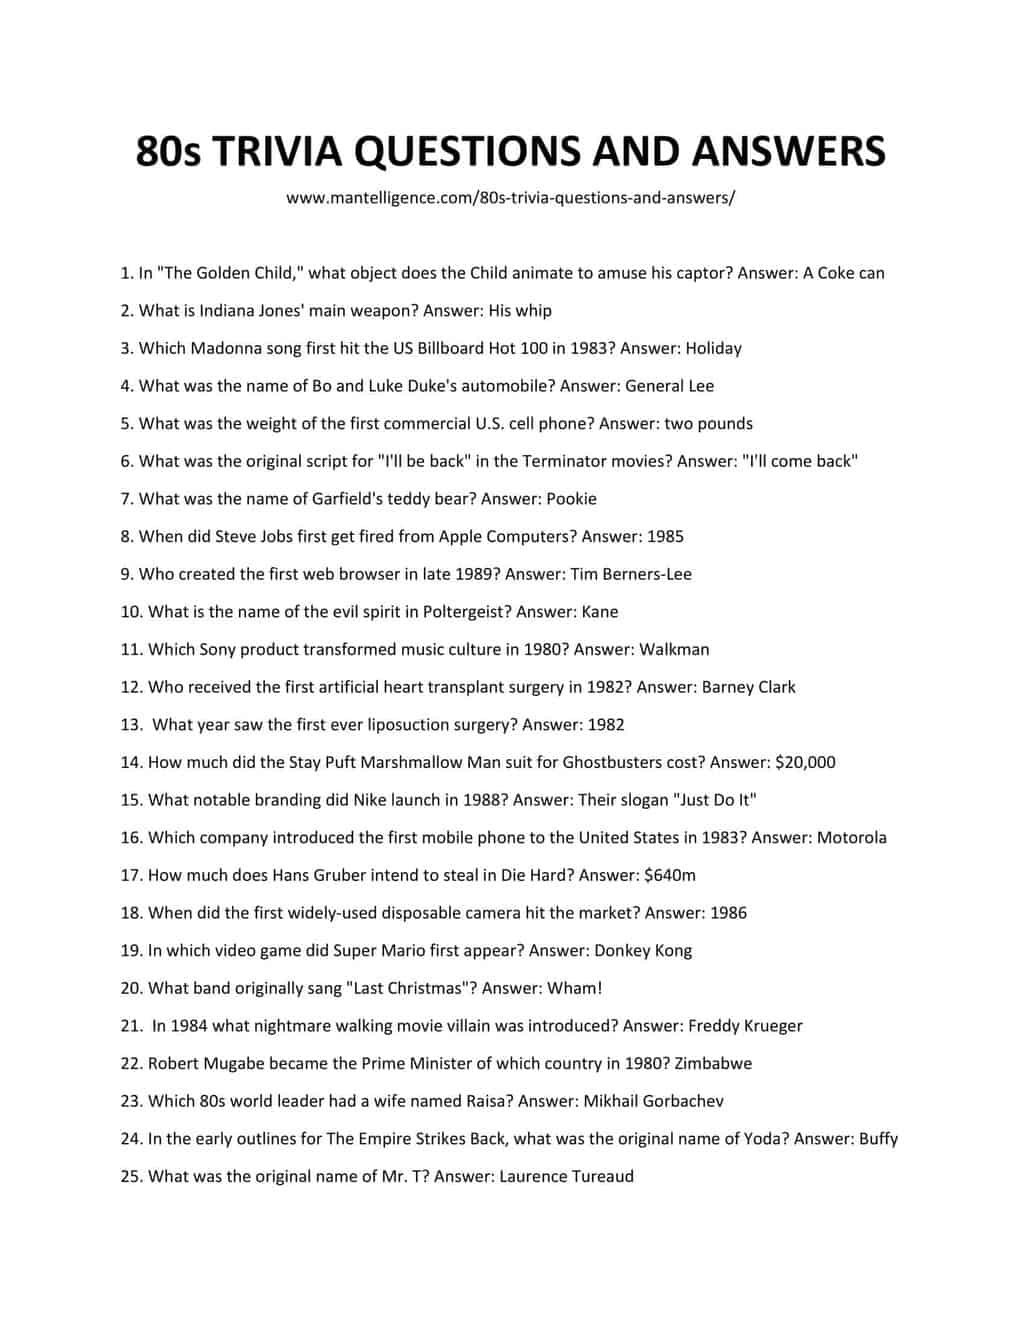 80'S Trivia Questions And Answers Printable